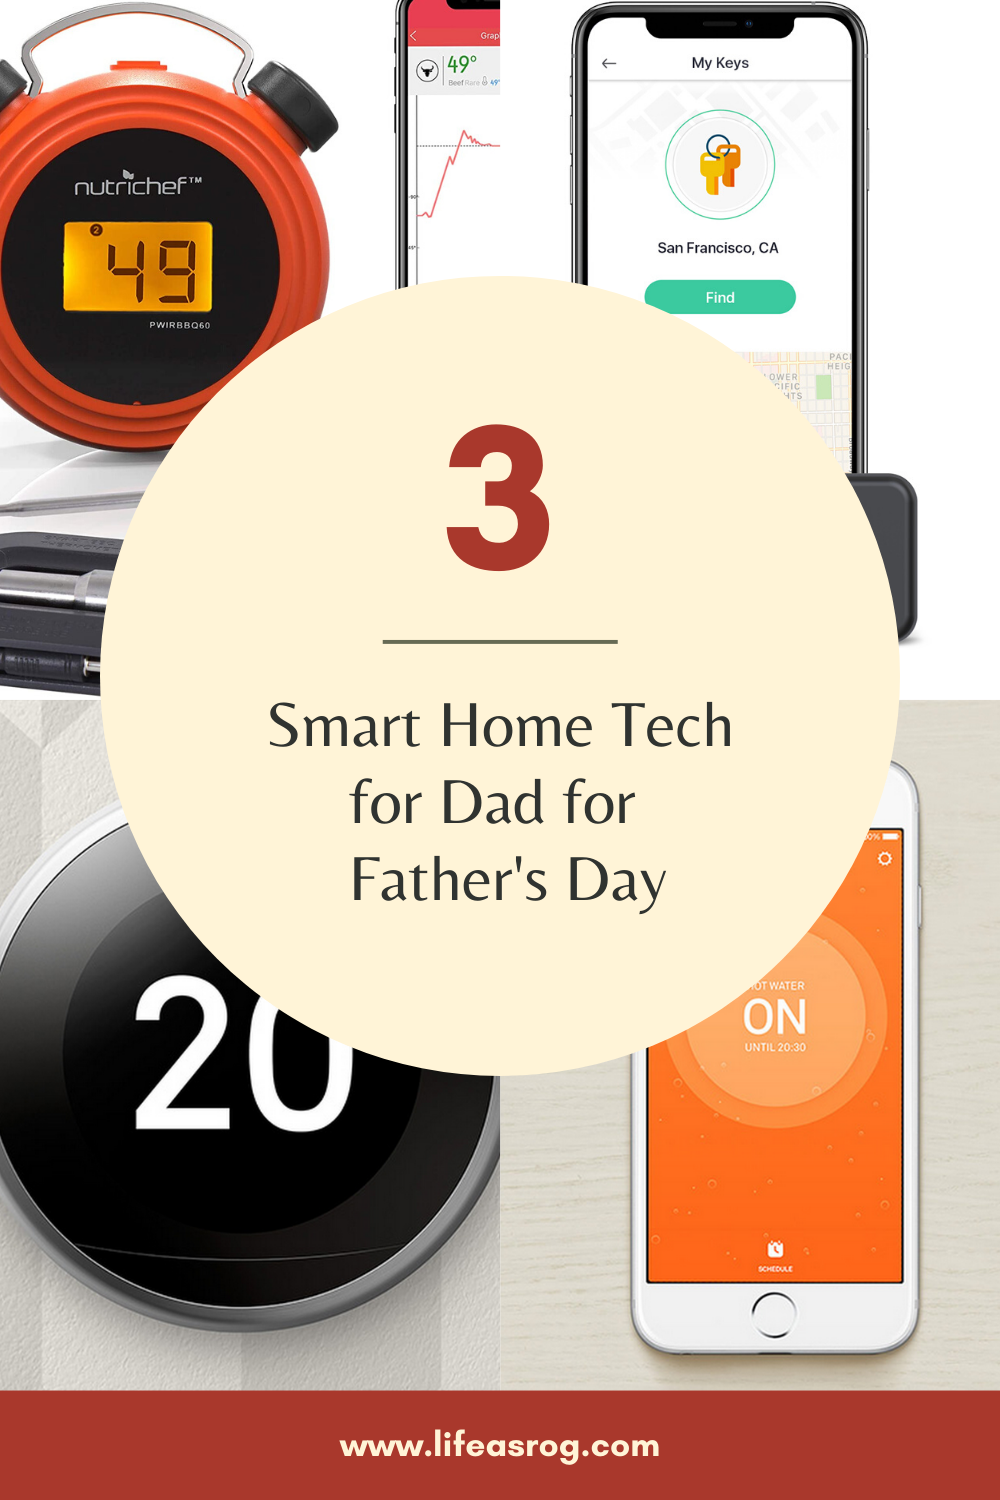 Smart Home Tech for Dad for Father's Day